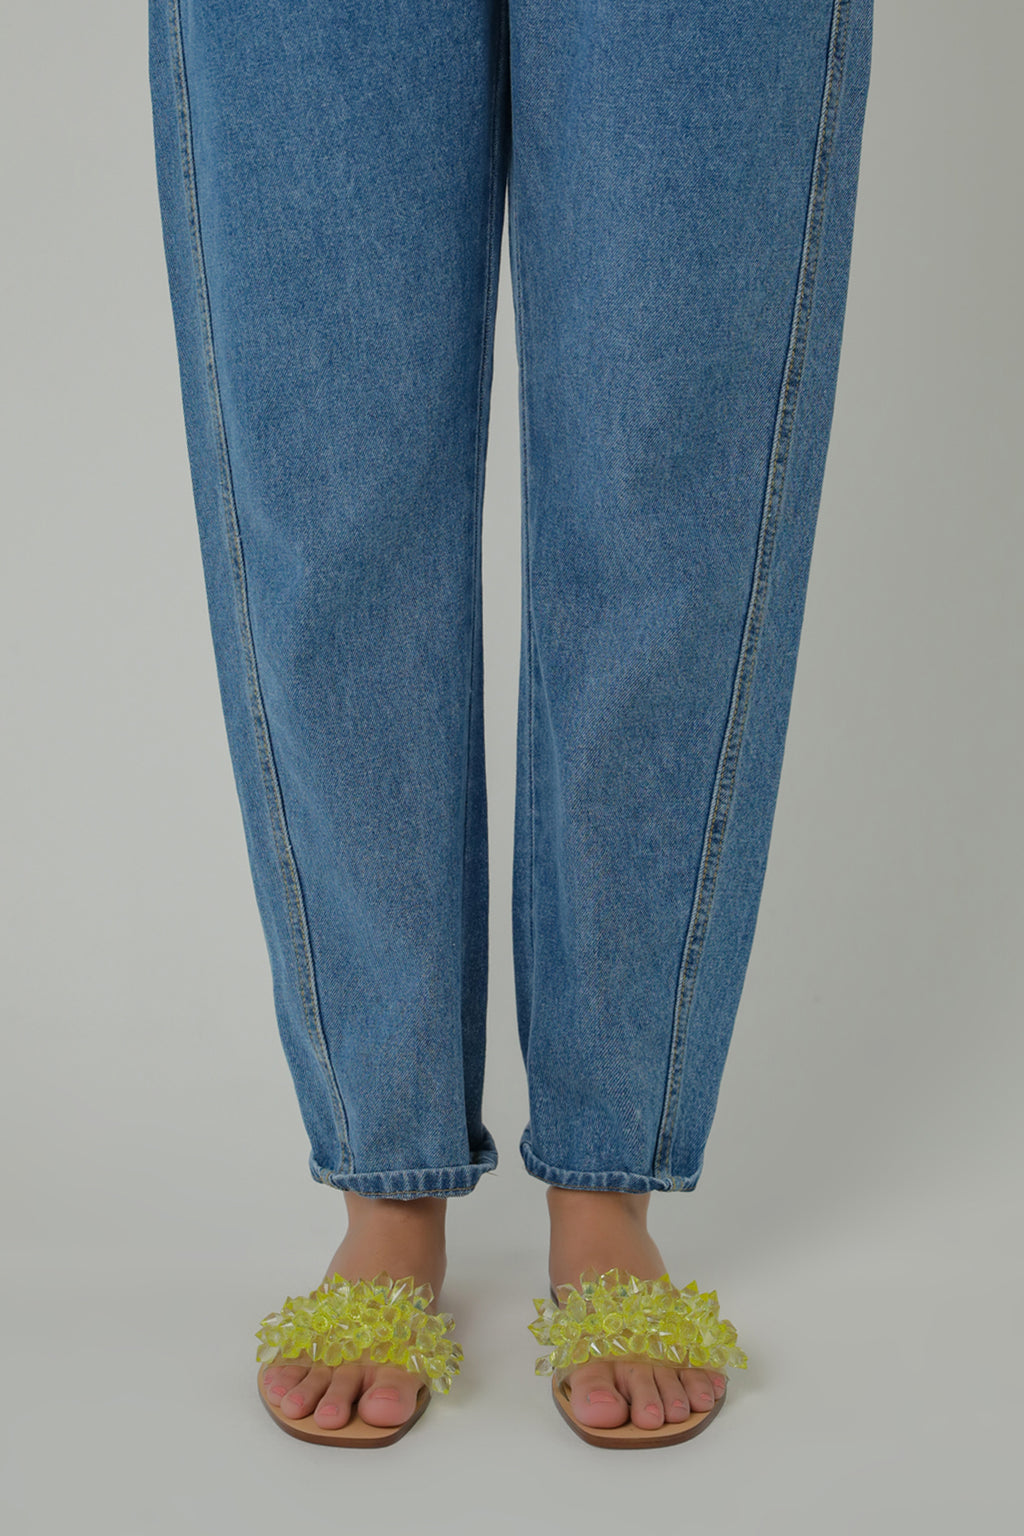 SLOUCHY JEANS (WBF111661) - Ethnic by Outfitters